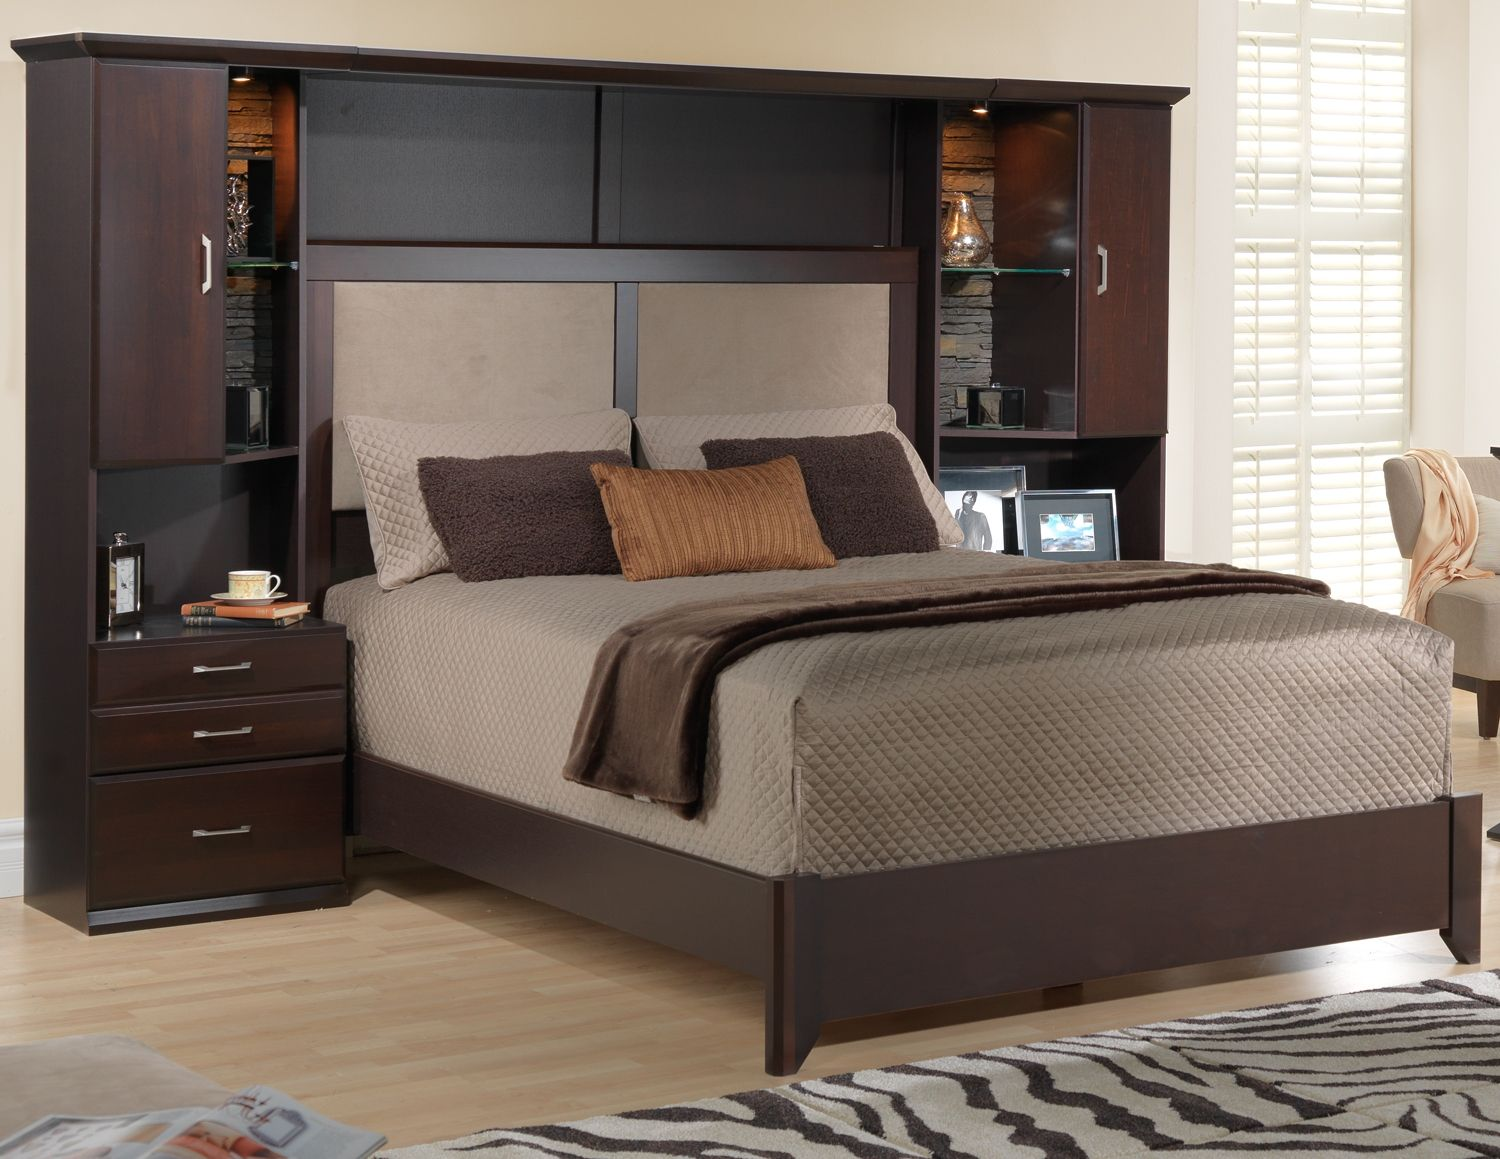 Santa Cruz Bedroom Furniture 17 Best Images About Home On Pinterest Santa Cruz Money Saving